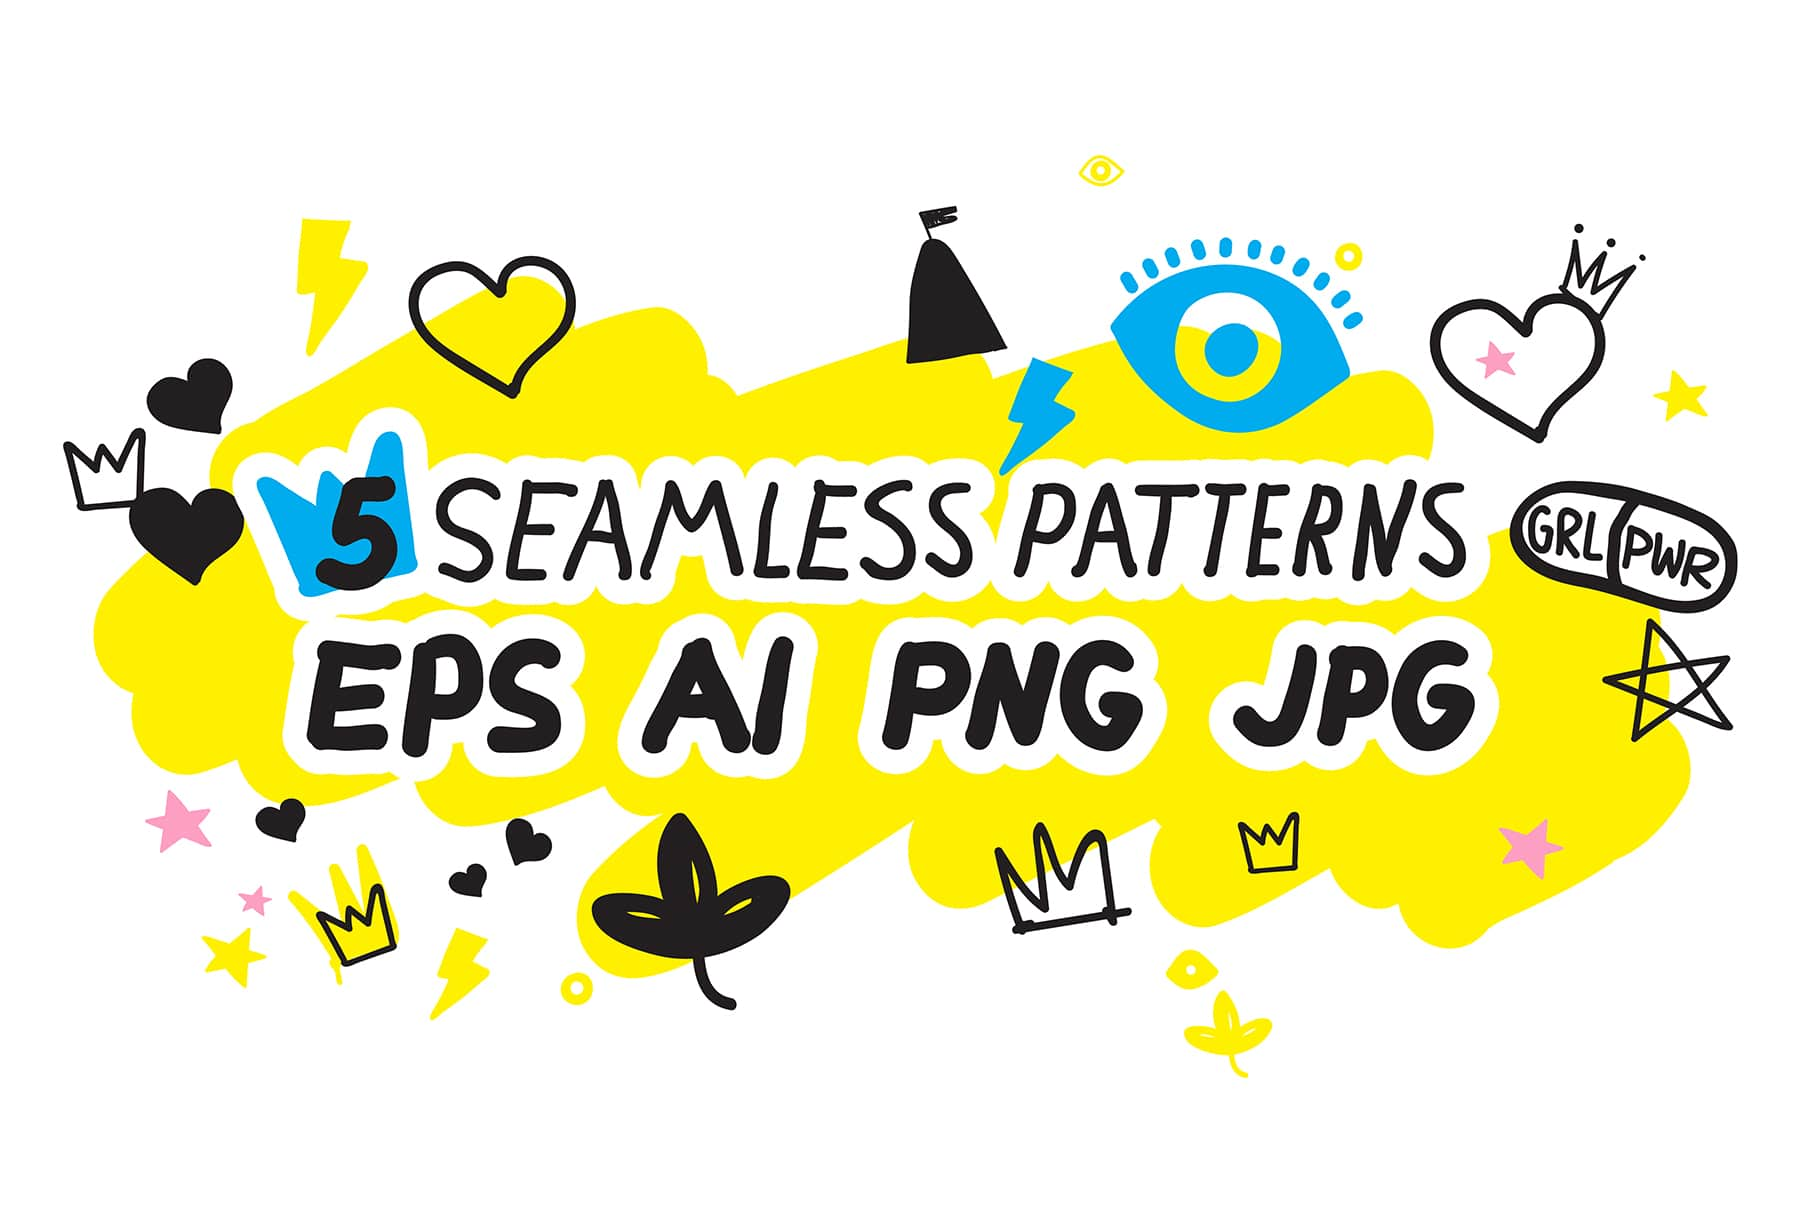 170 Doodles + Elements + Patterns - $25 Only - Preview 10 min